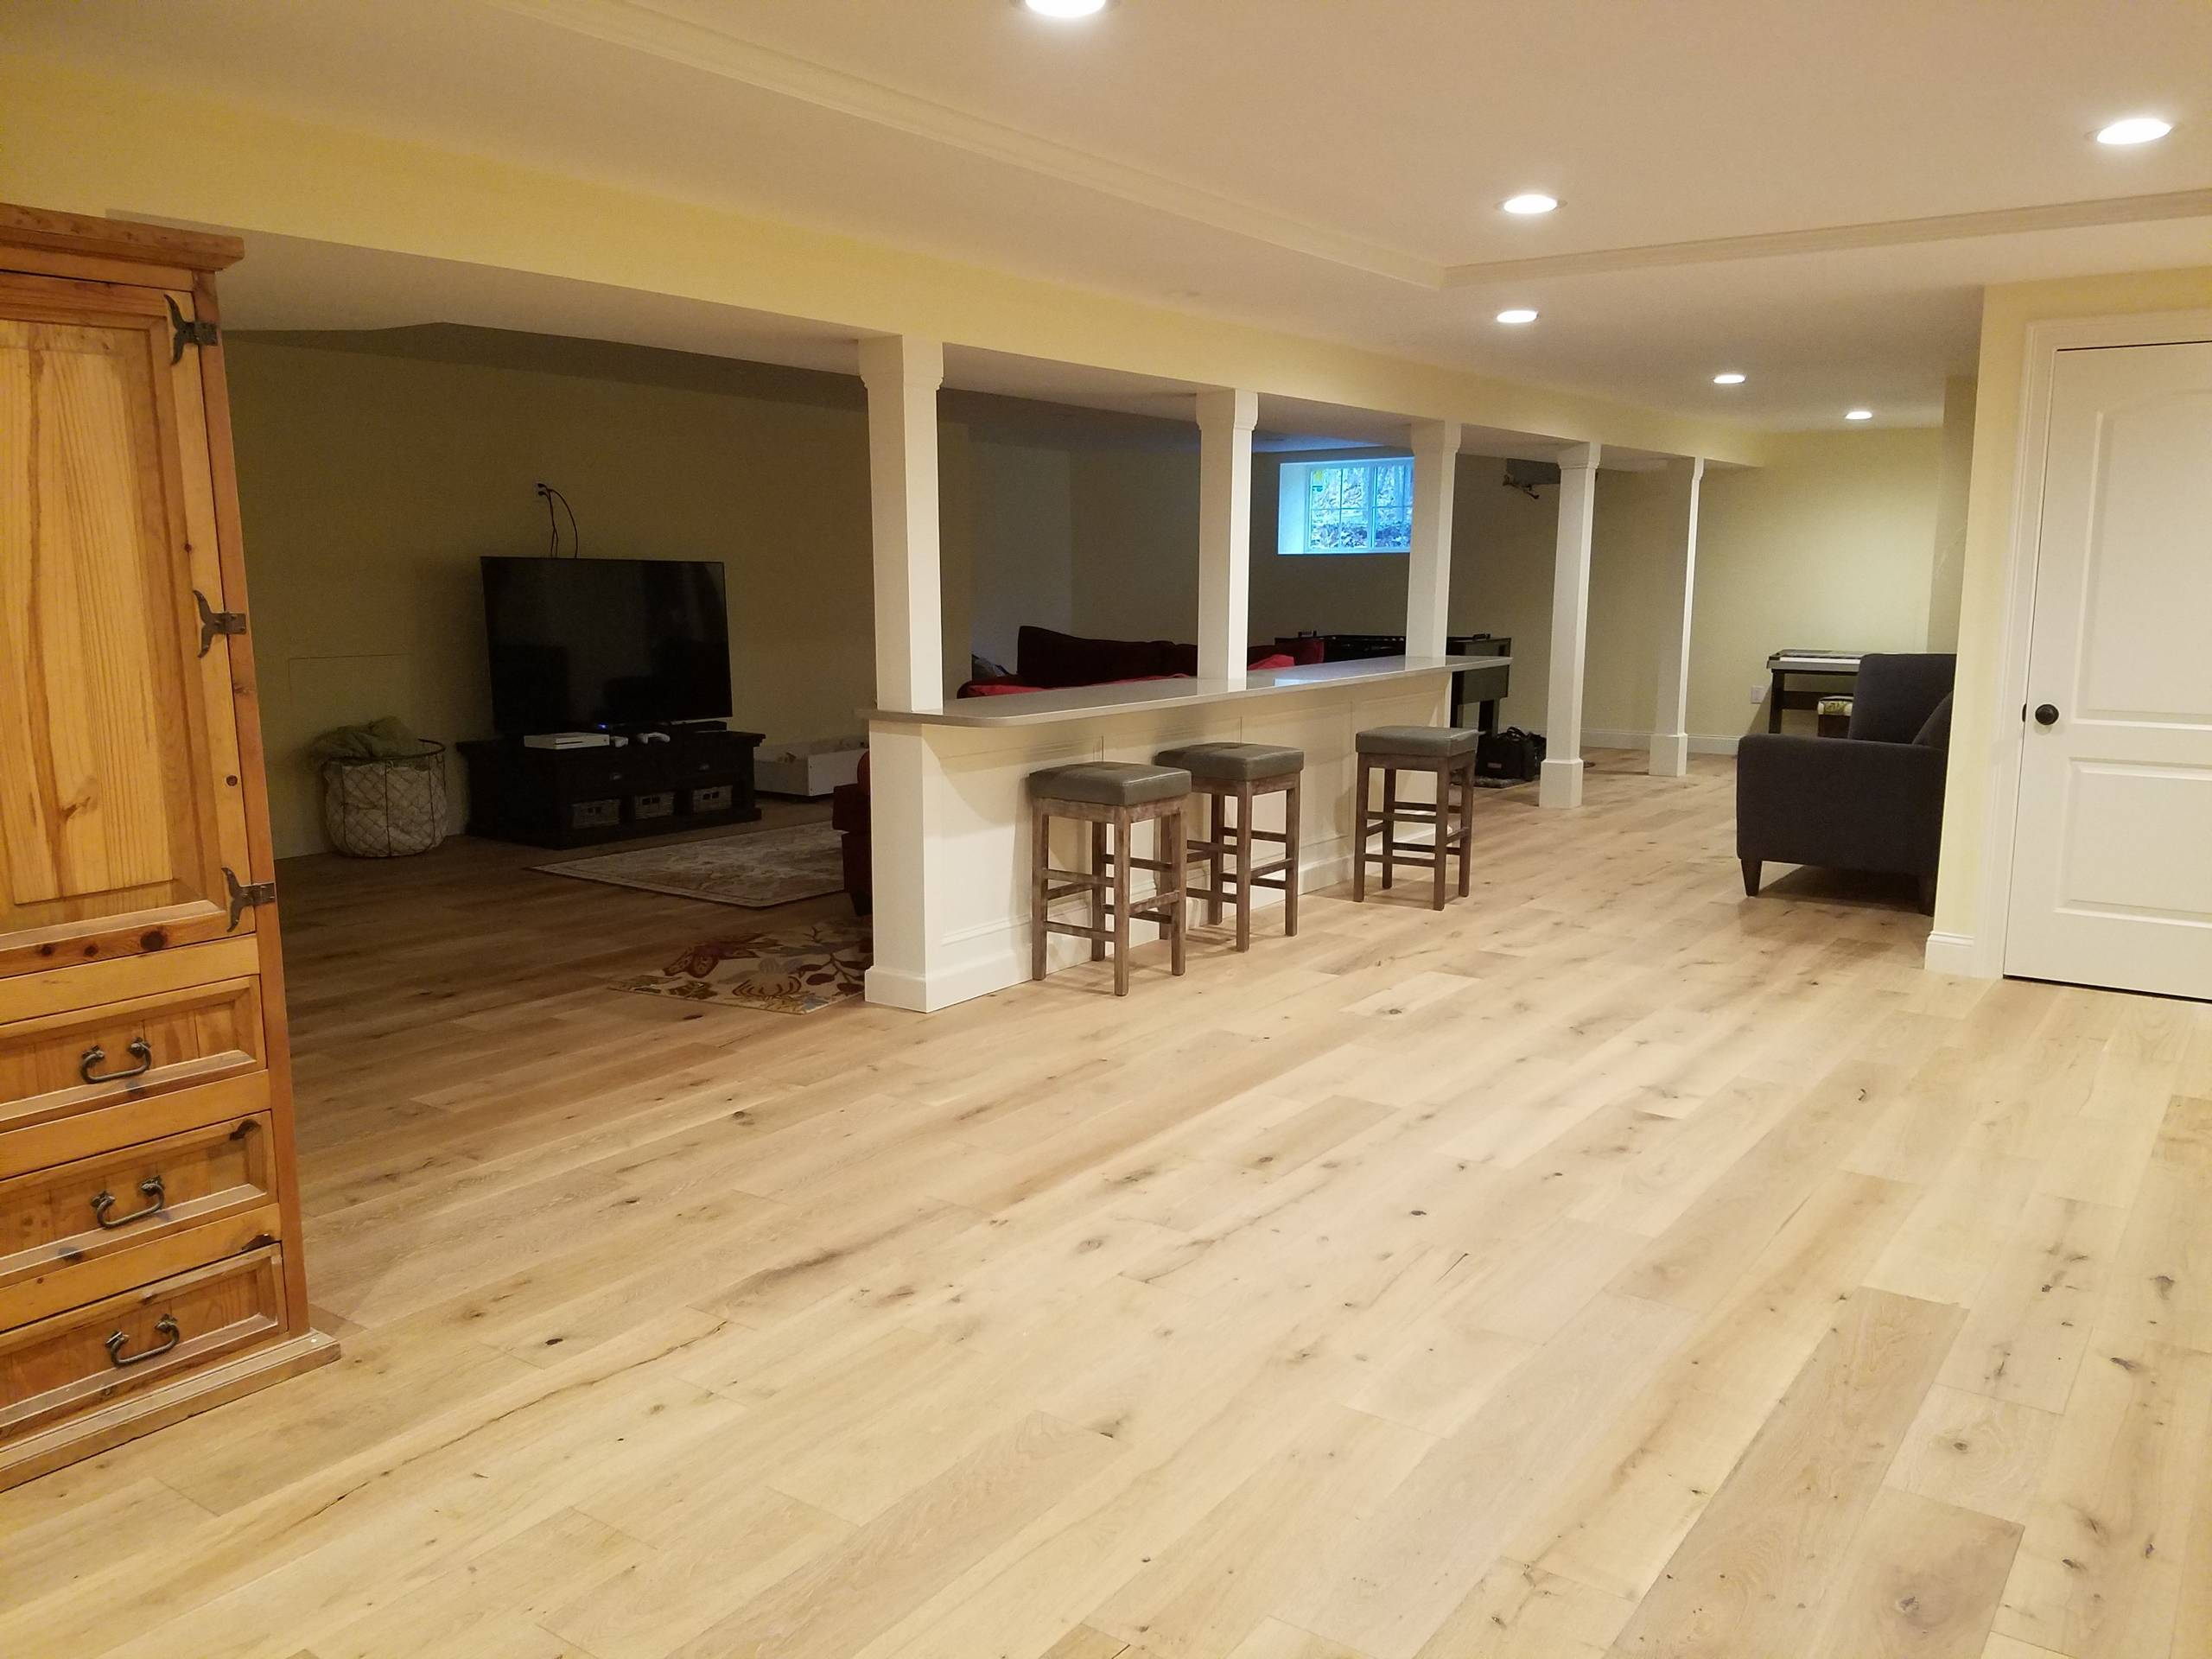 2000sqft basement